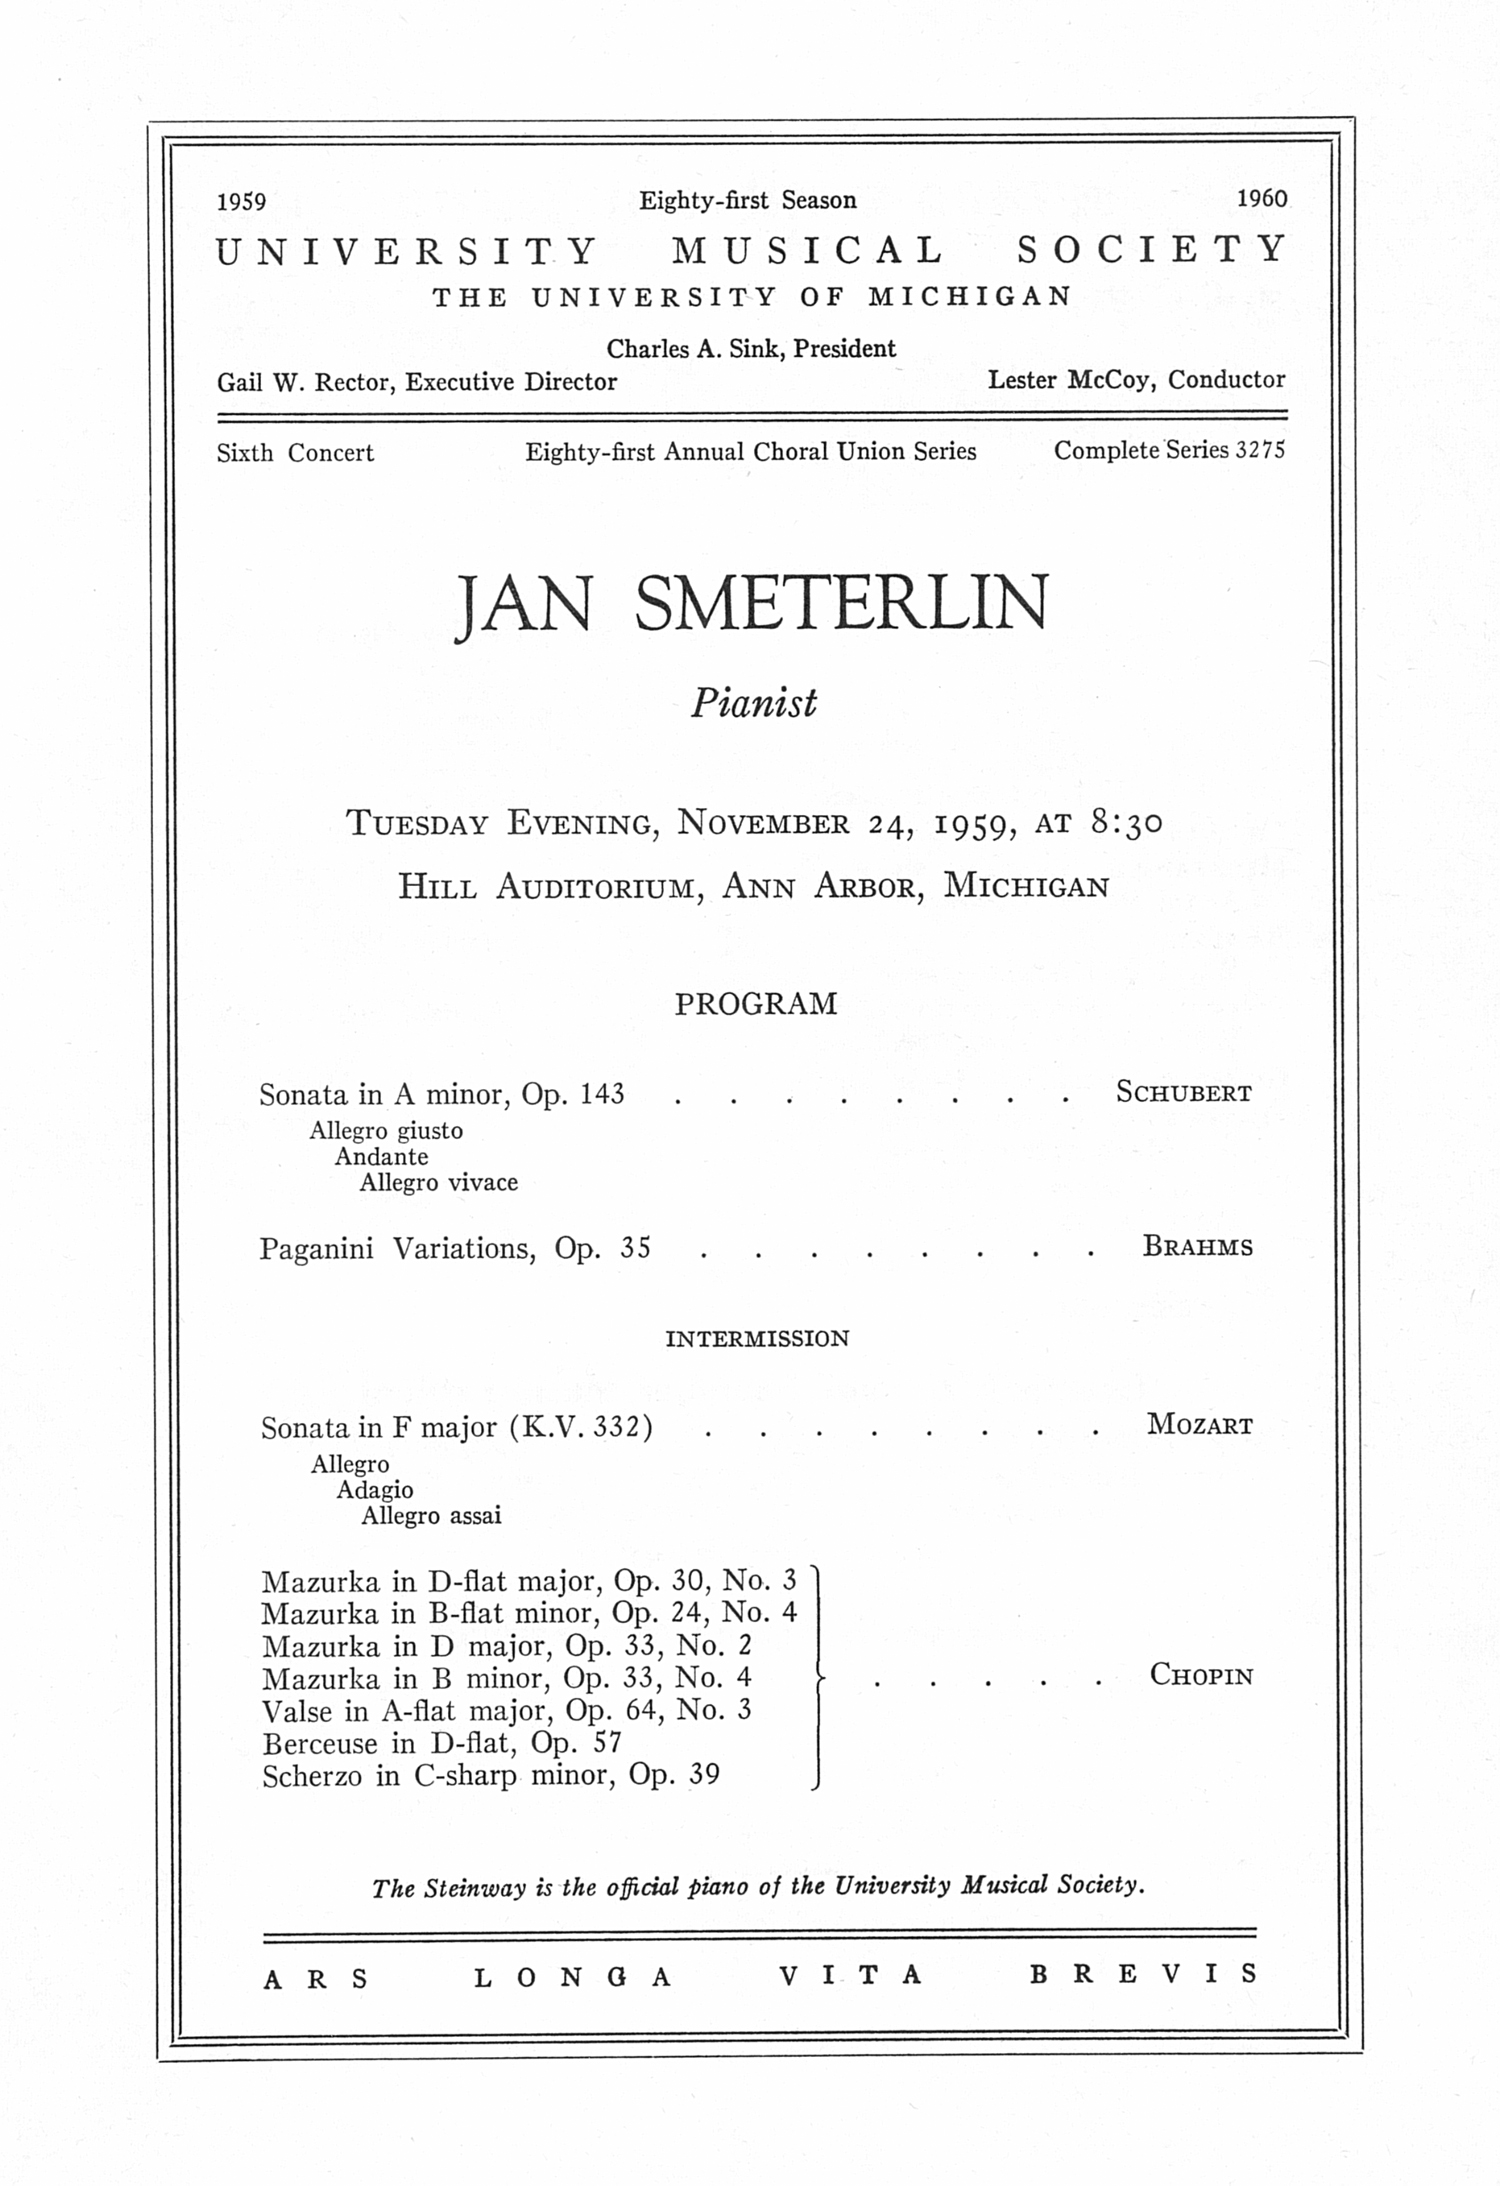 UMS Concert Program, November 24, 1959: Jan Smeterlin --  image